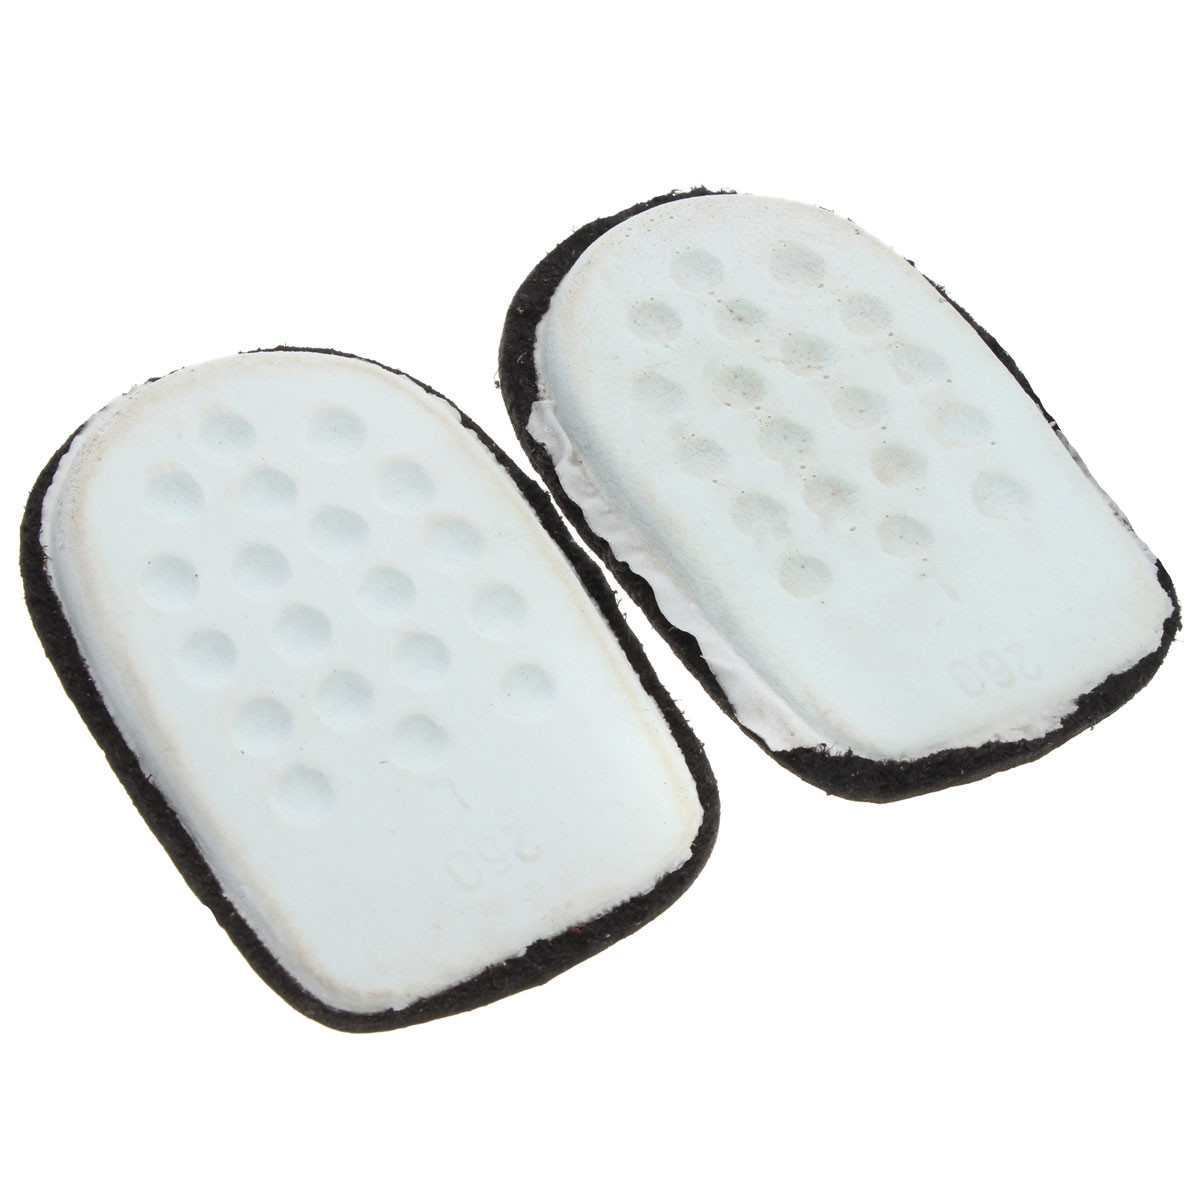 leather heel support cushions insoles inserts pads for